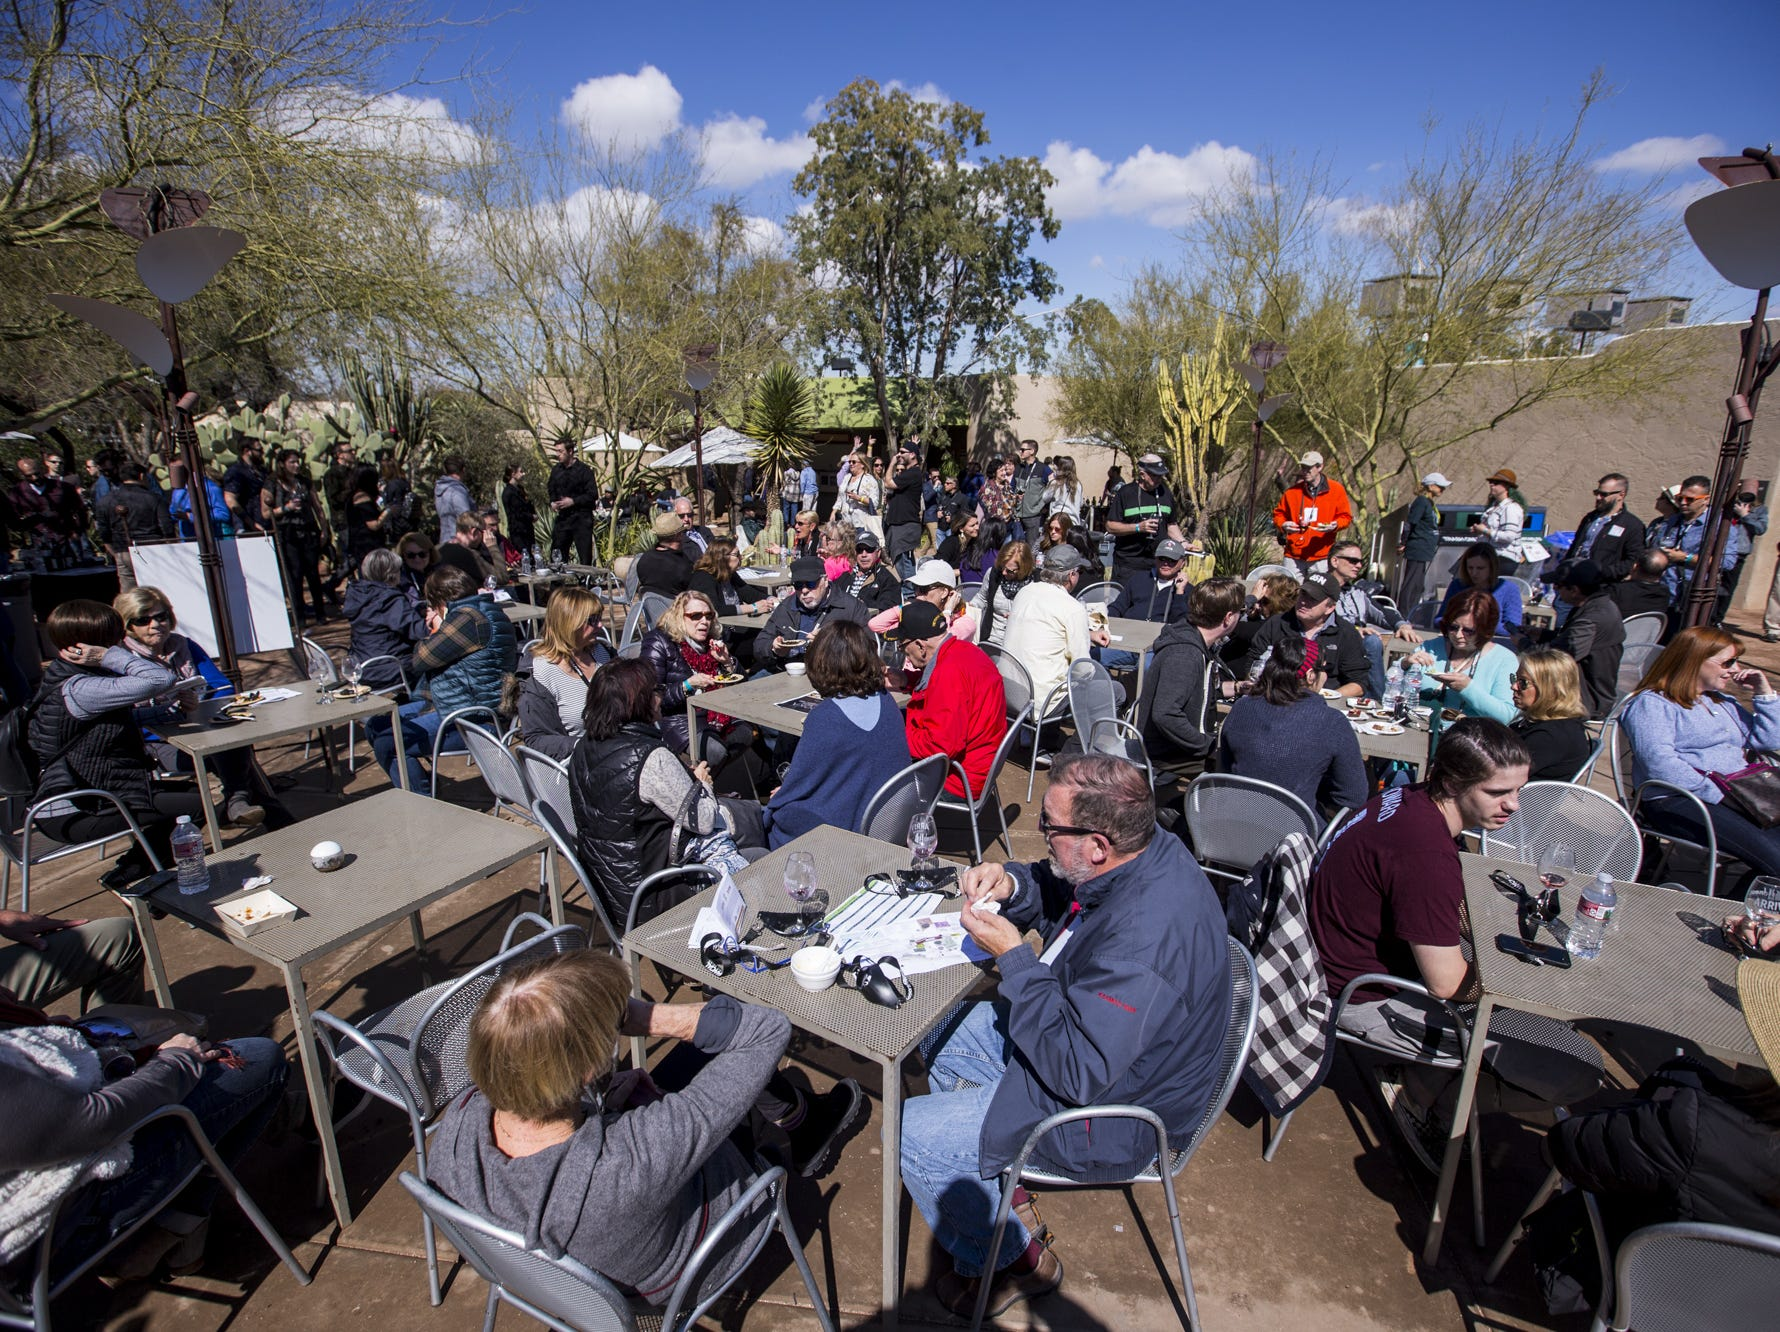 People sample food during Day 1 of the Devour Culinary Classic on Saturday, Feb. 23, 2019, at Desert Botanical Garden in Phoenix.